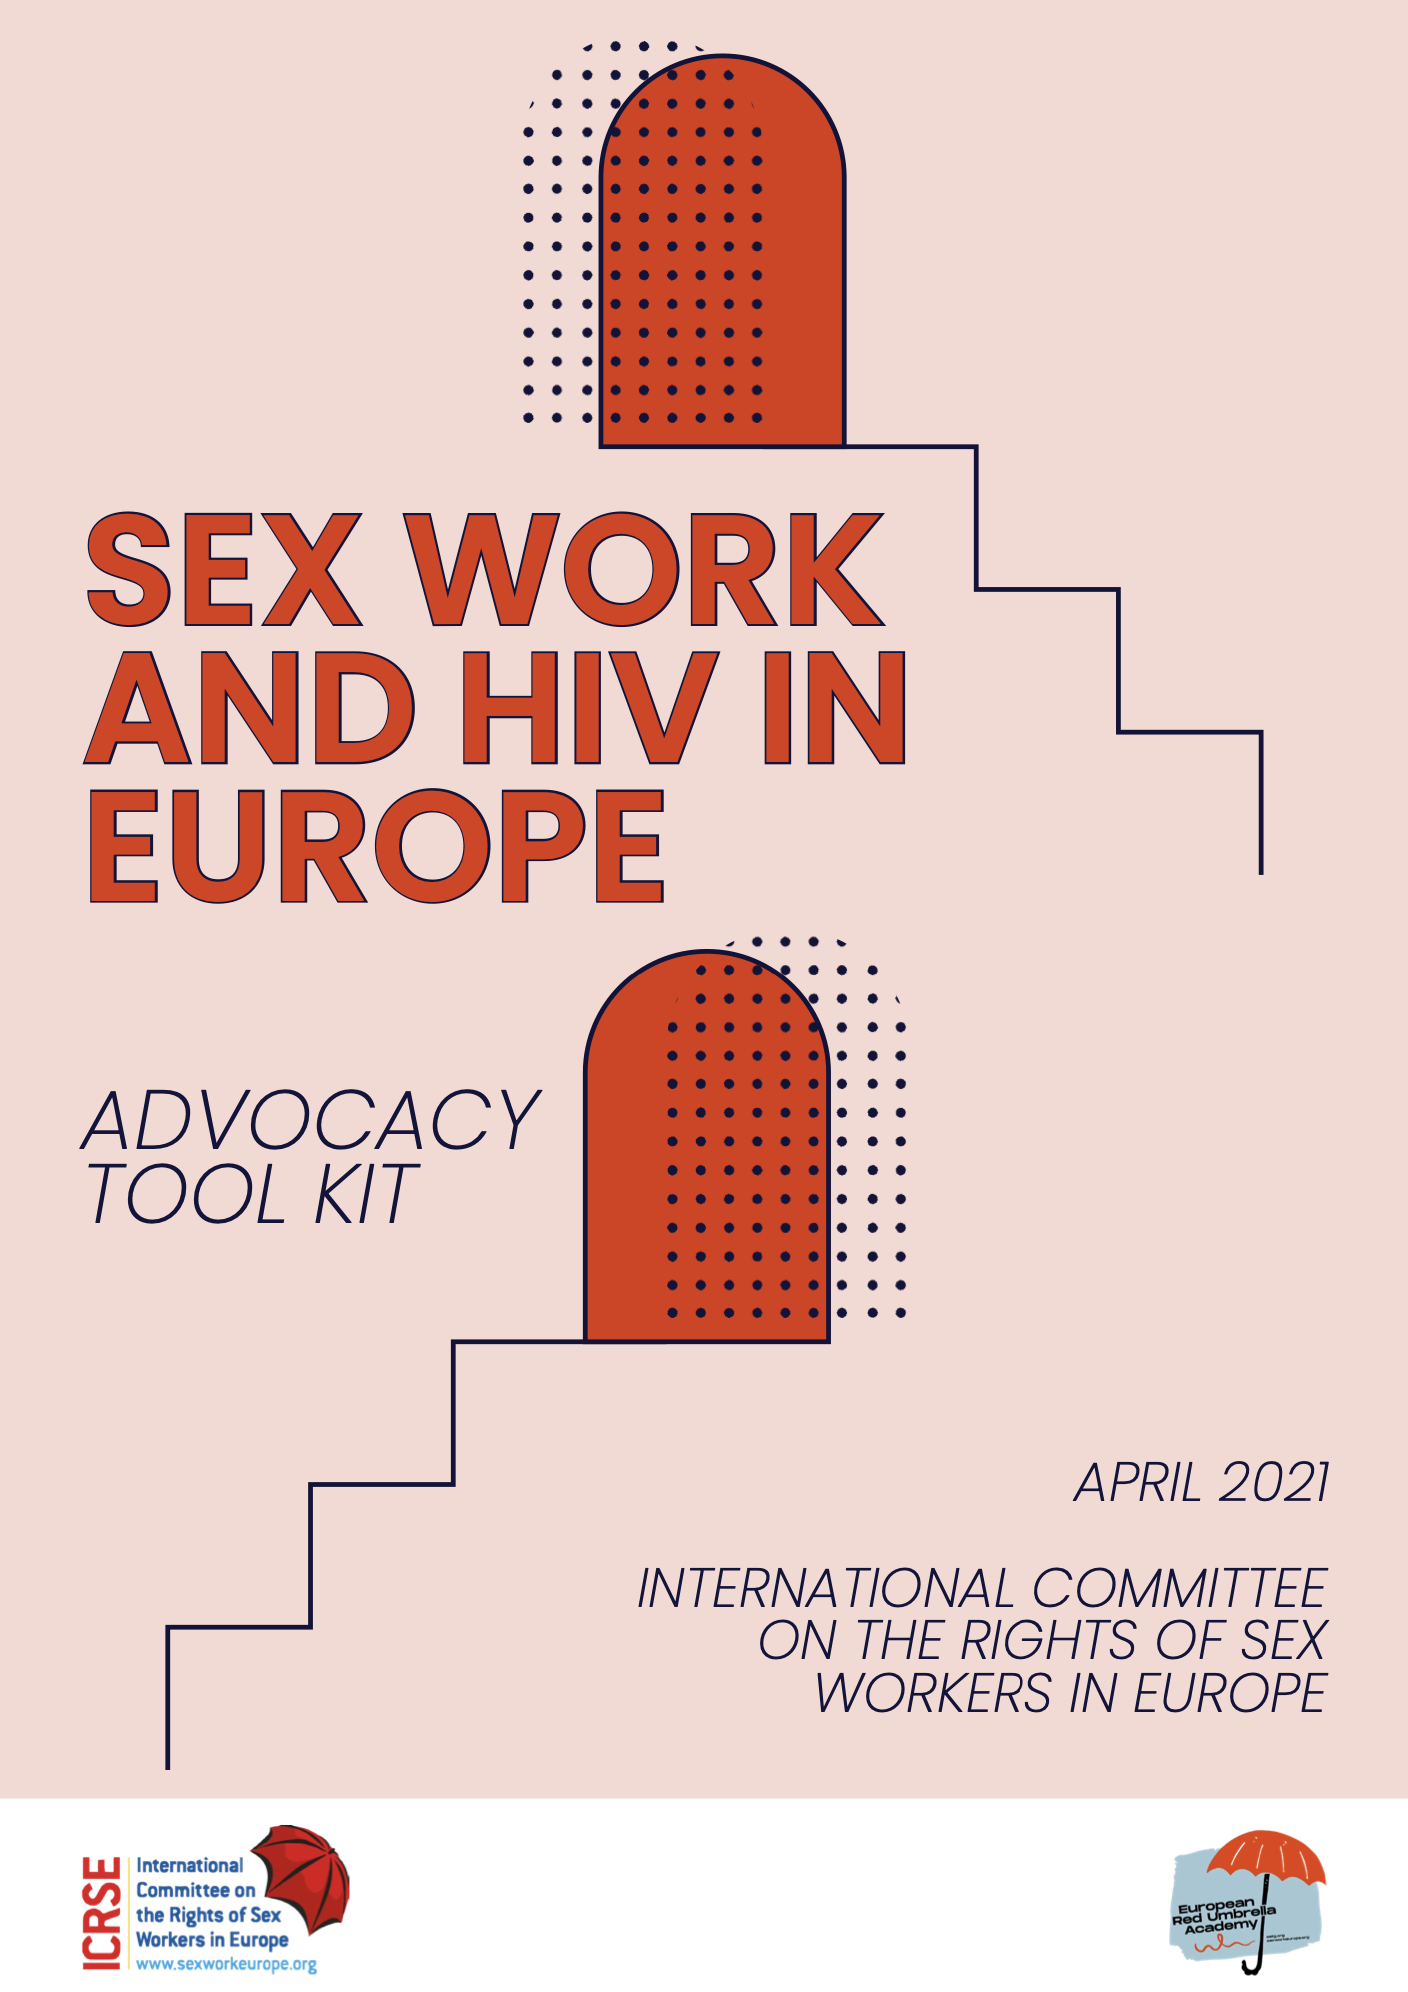 SEX WORK AND HIV IN EUROPE - ADVOCACY TOOL KIT